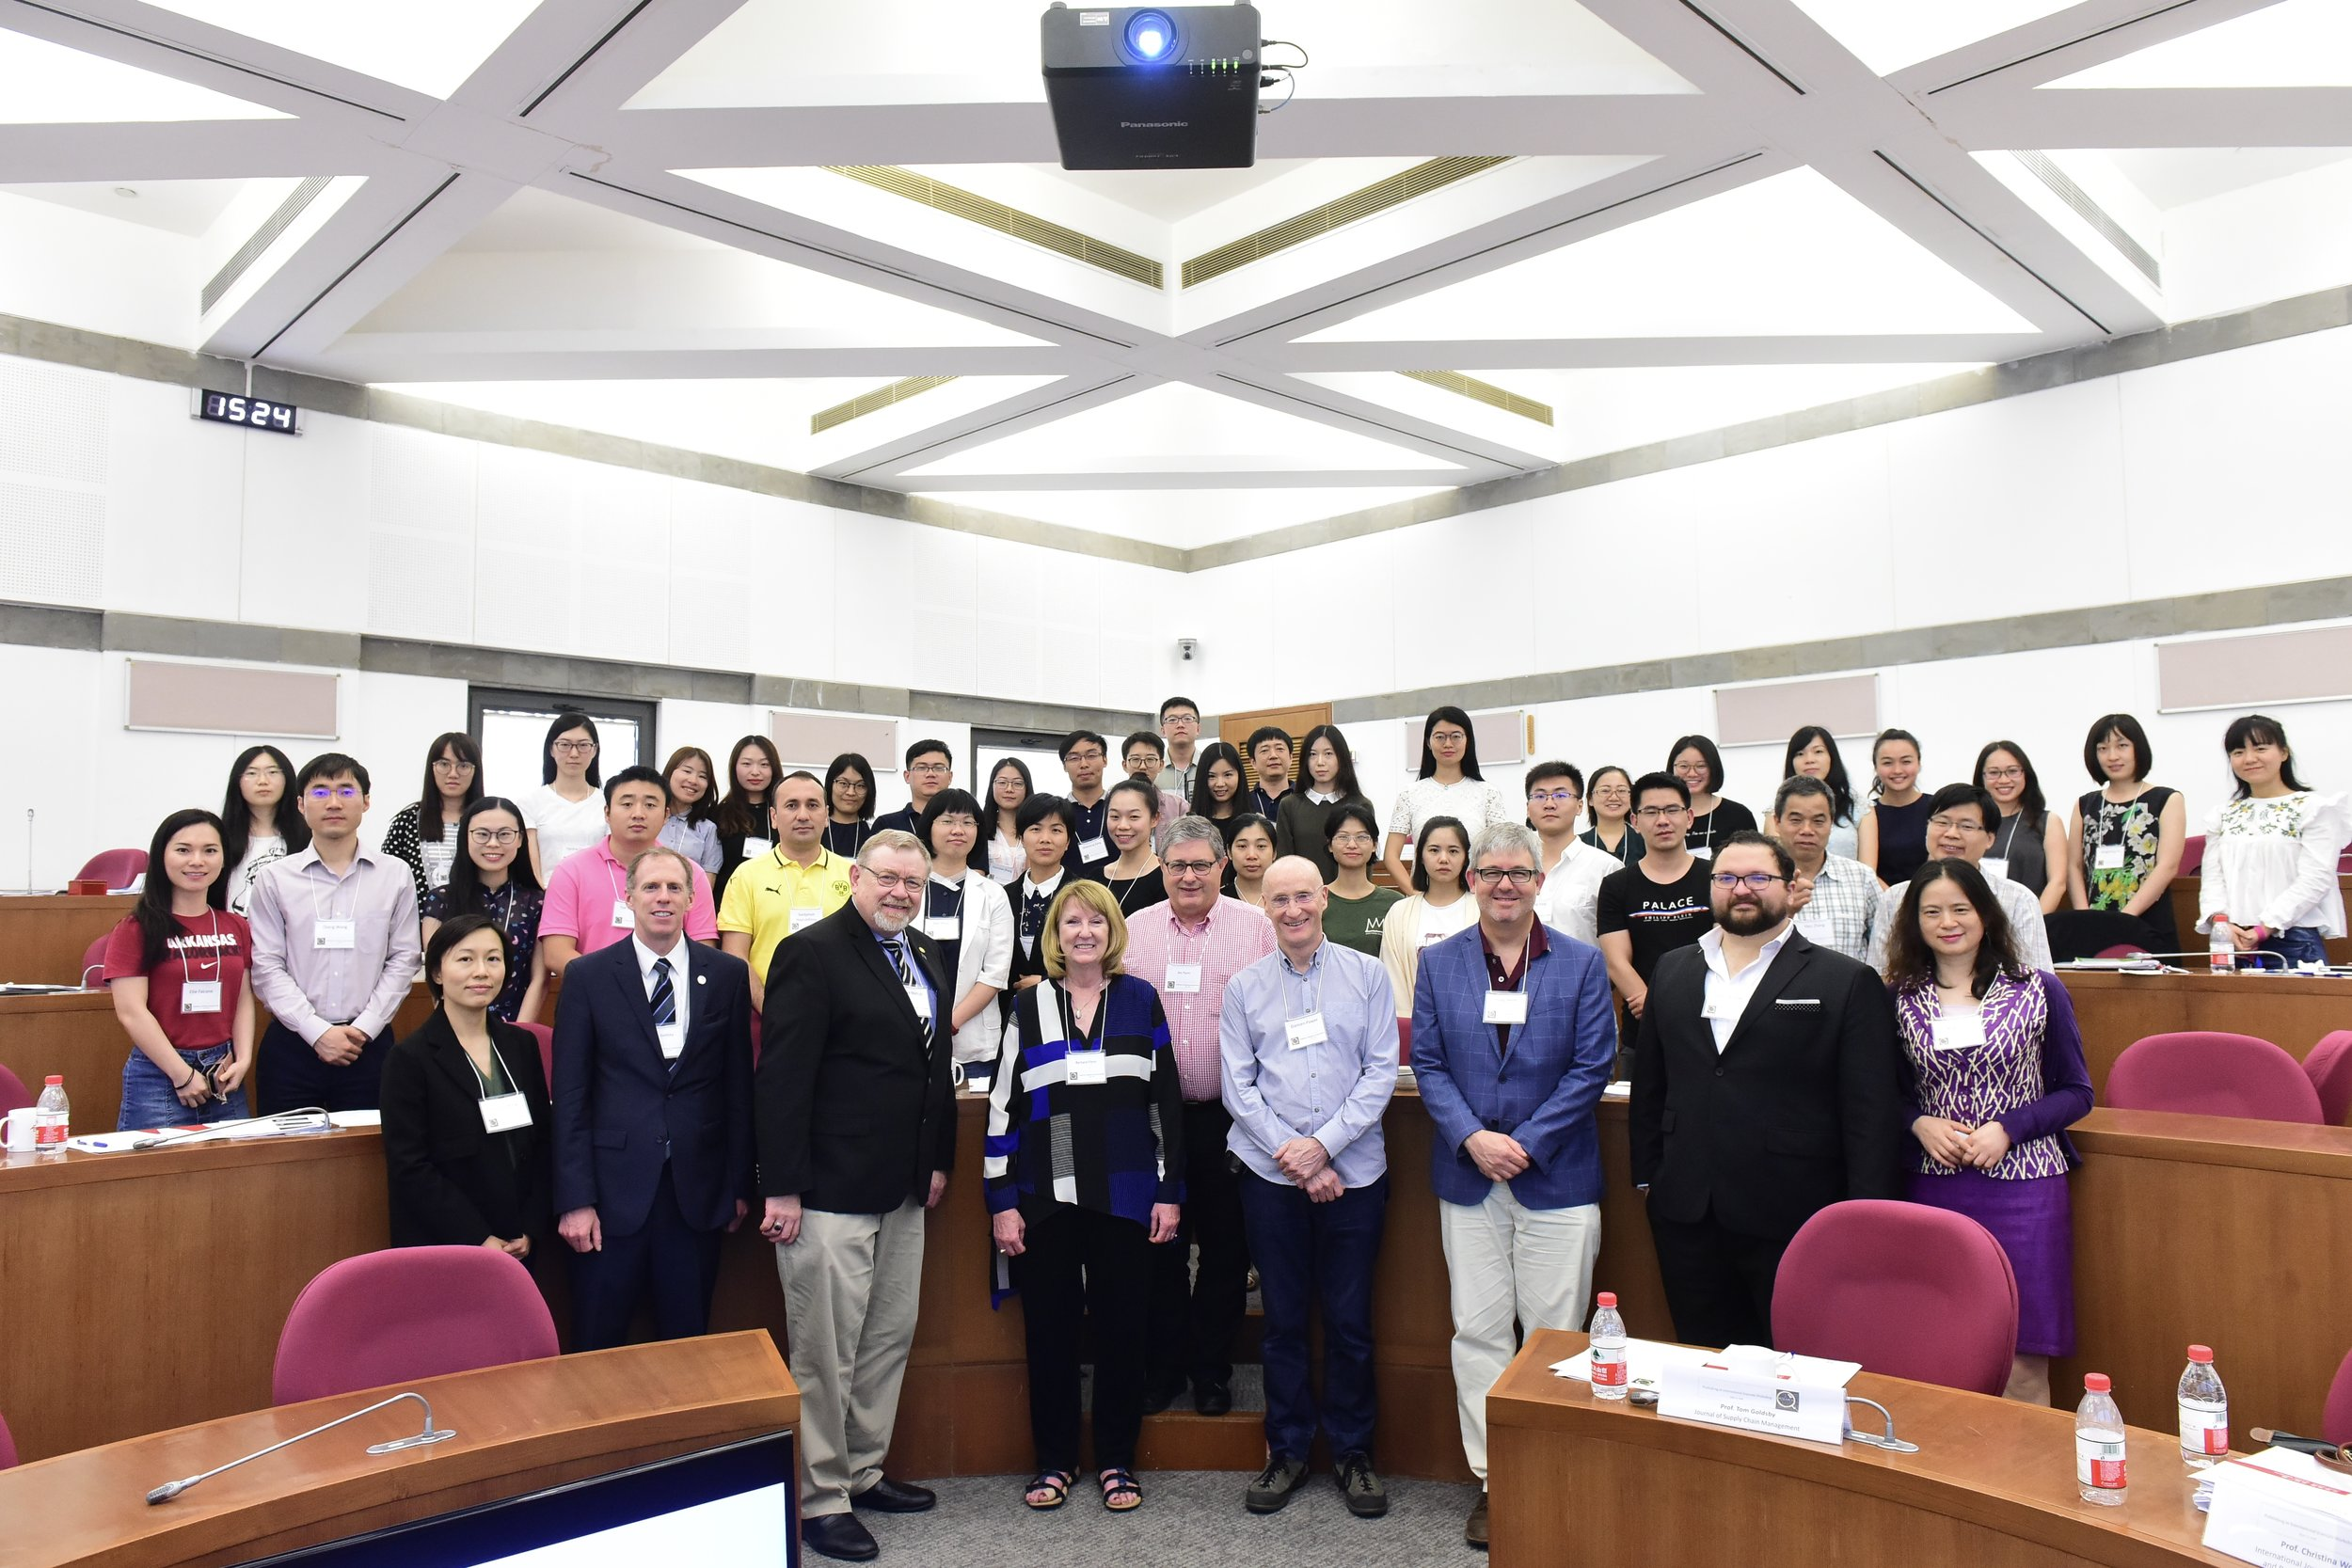 Professor Barbara B. Flynn, Editor in Chief of JSCM along with joint hosts and participants of the Workshop